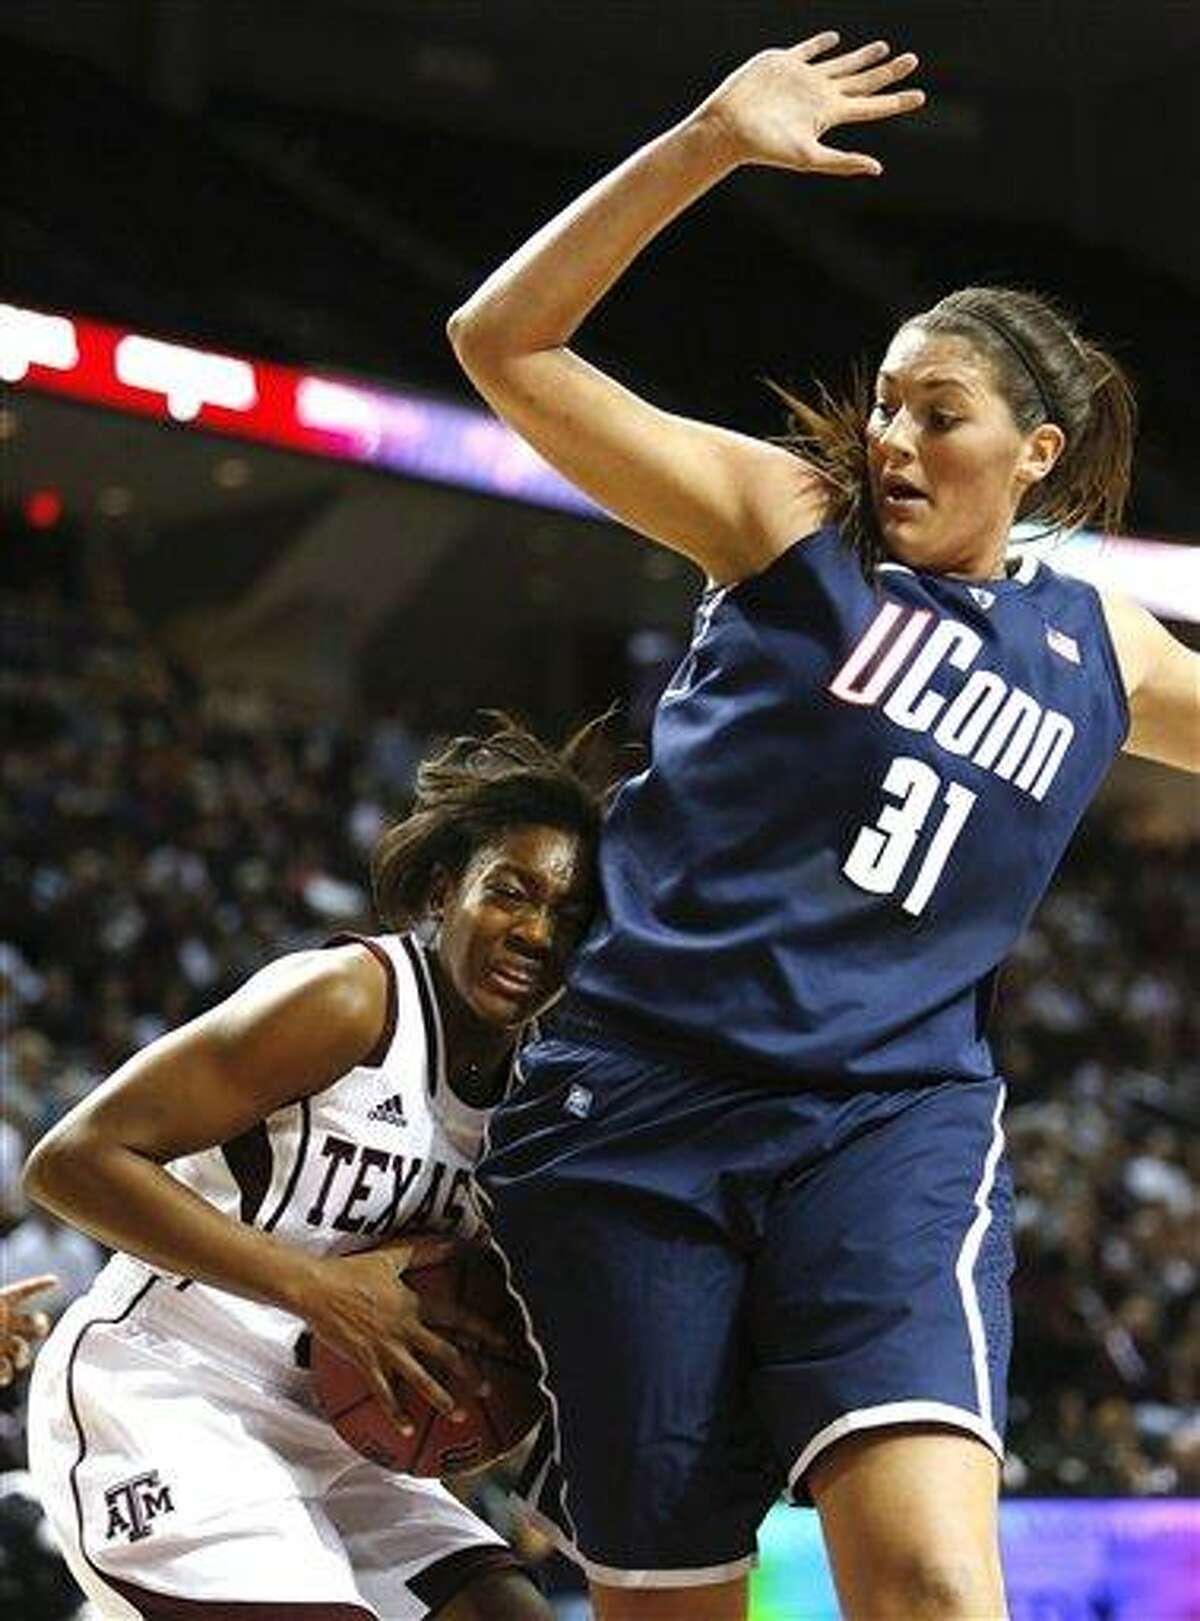 Texas A&M's Courtney Walker, left, attempts to drive the ball against Connecticut defender Stefanie Dolson (31) during the first half of a NCAA college basketball game Sunday, Nov. 18, 2012, in College Station, Texas. (AP Photo/Jon Eilts)